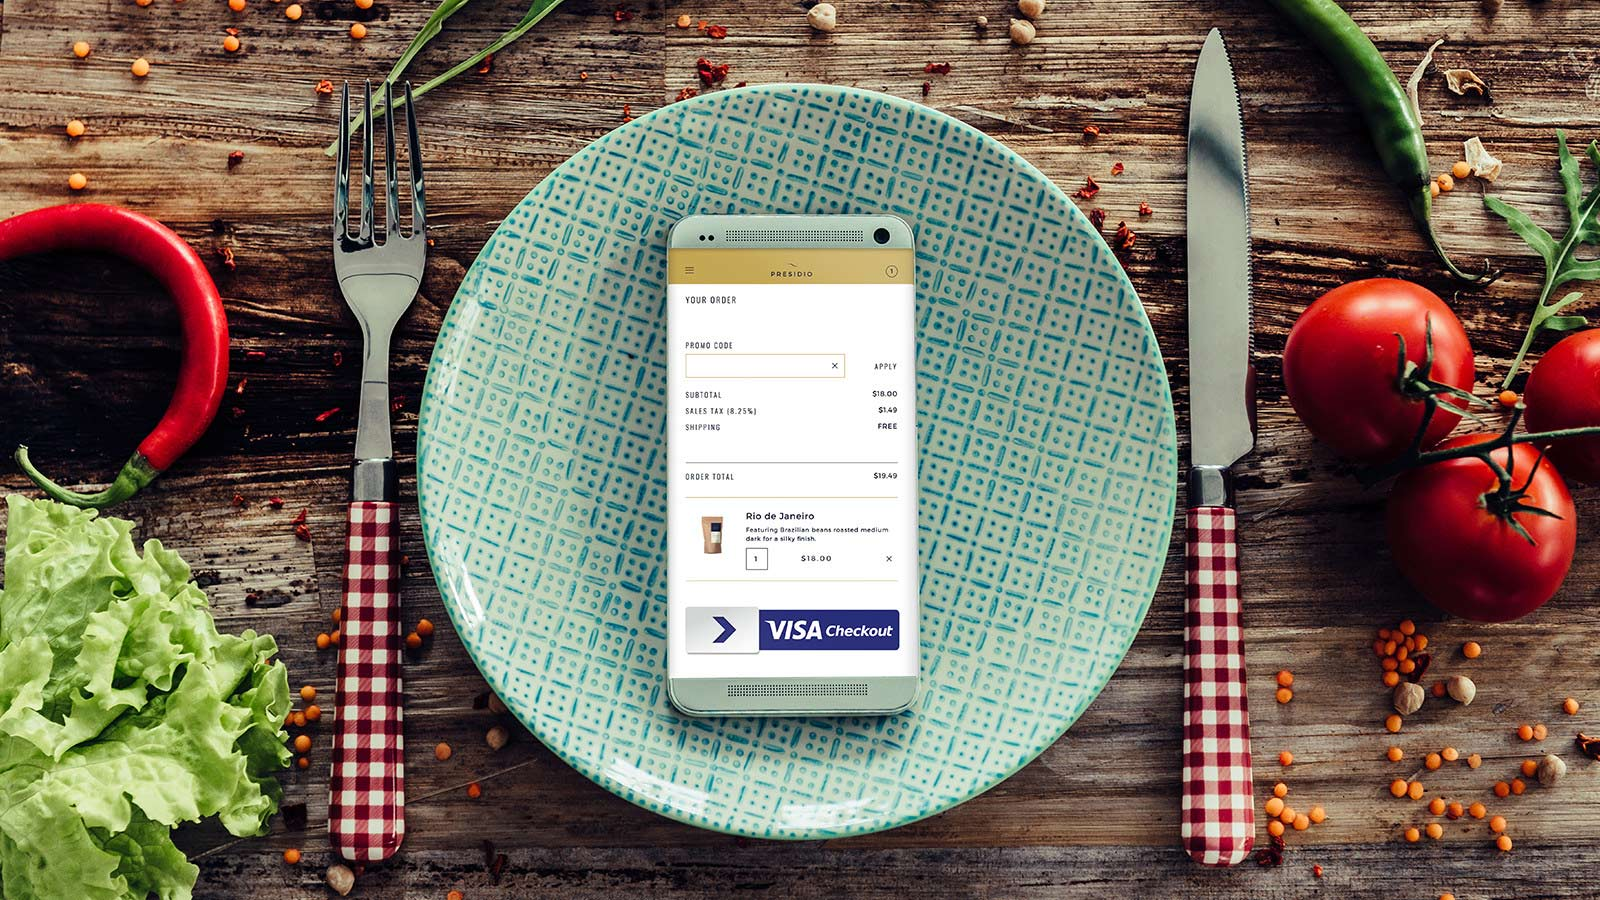 Mobile phone on top of a plate with the Visa Checkout logo visible on screen.